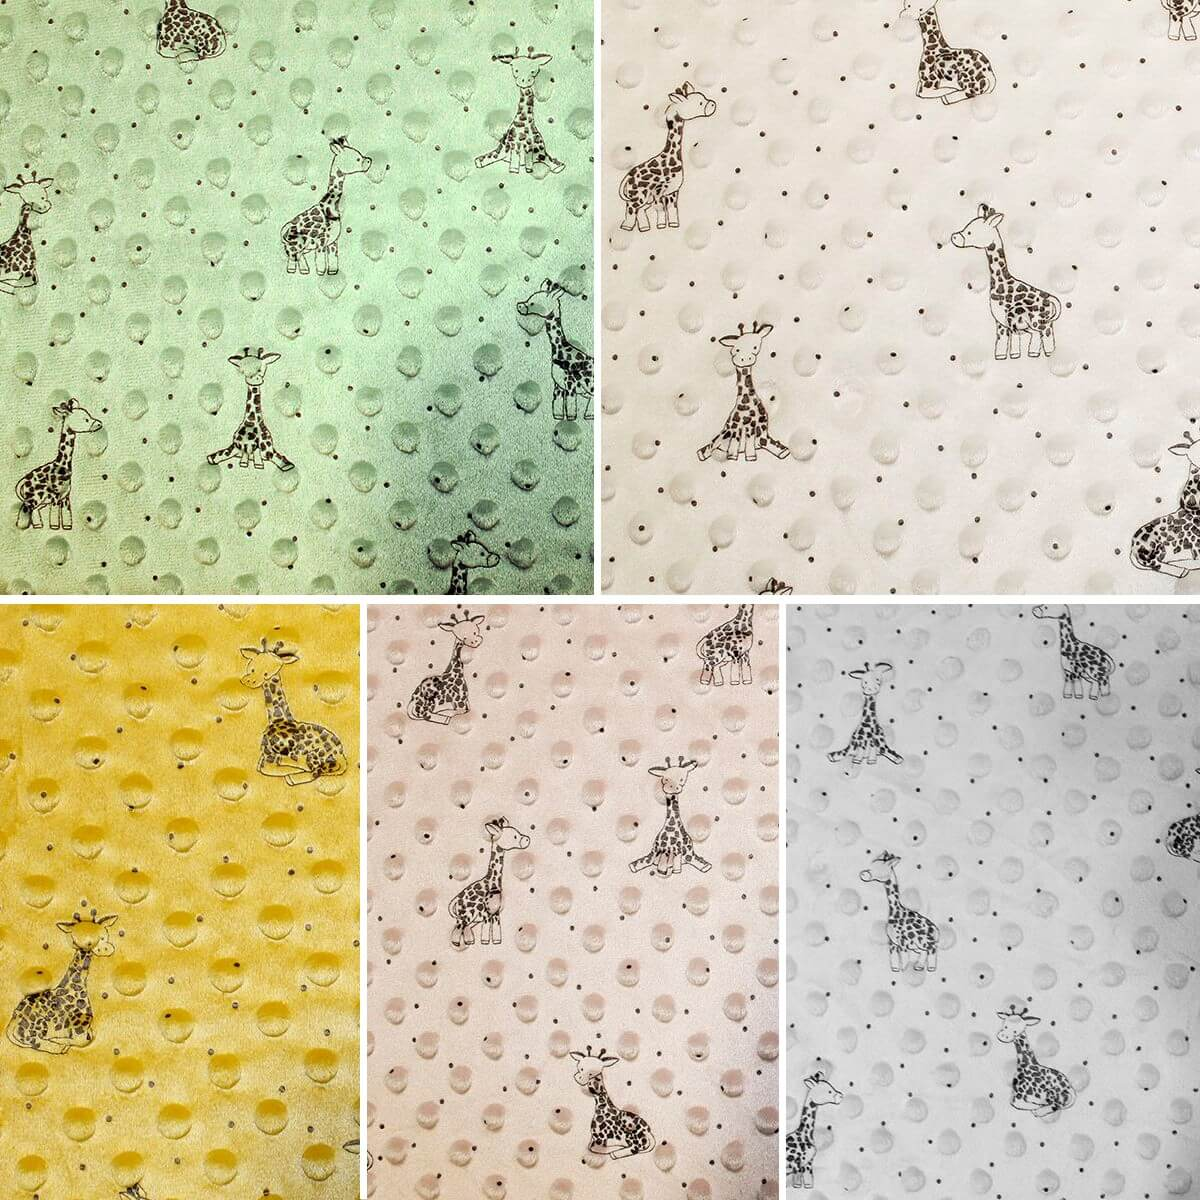 Green Patterned Super Soft Dimple Fleece Fabric Giraffes